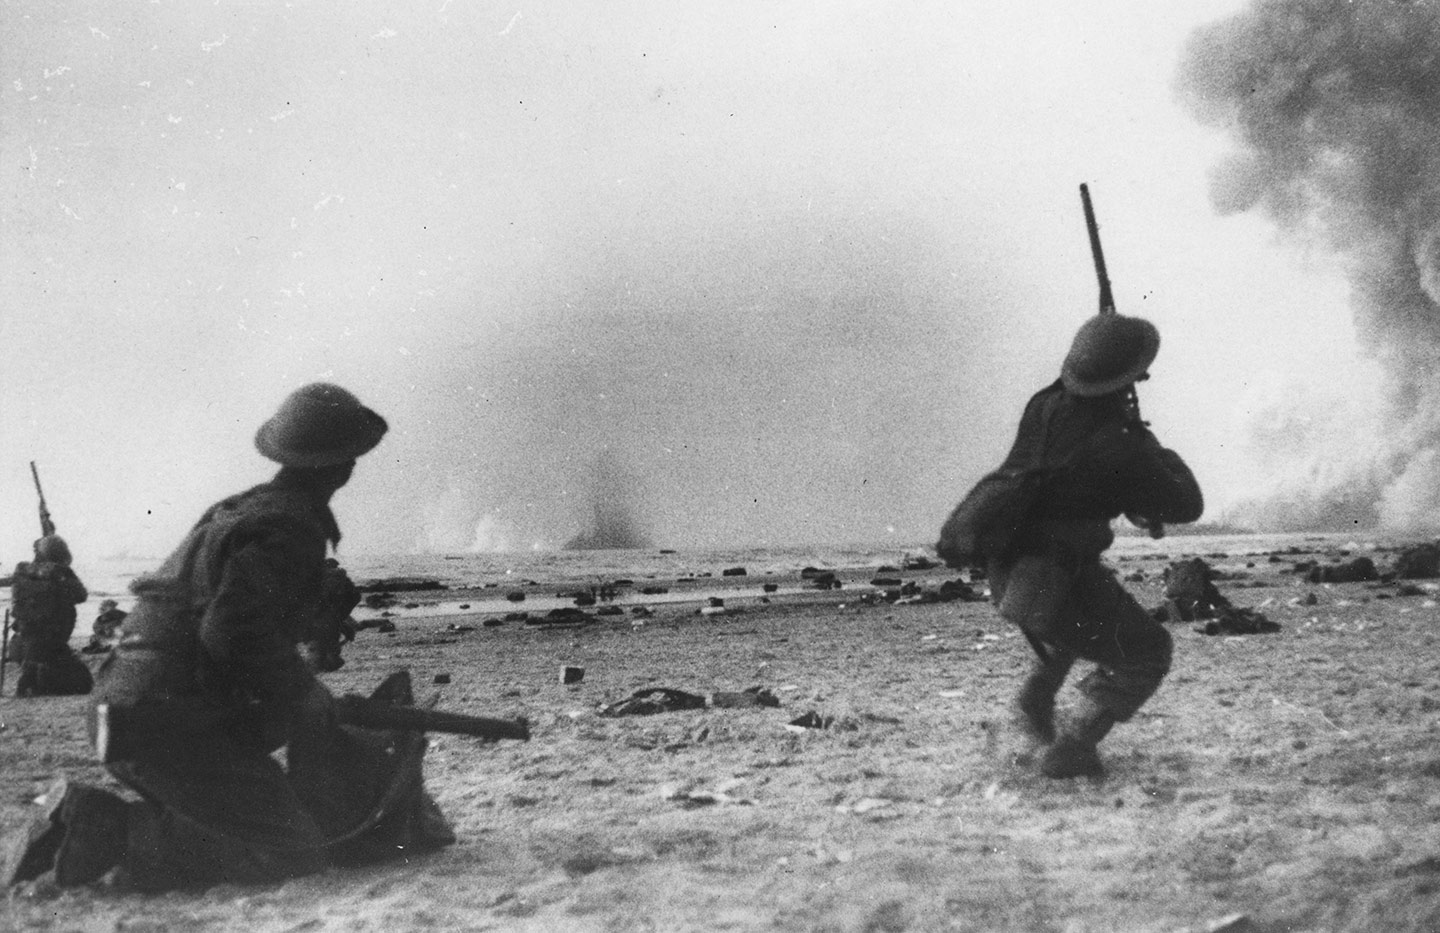 Was Dunkirk a triumph or disaster